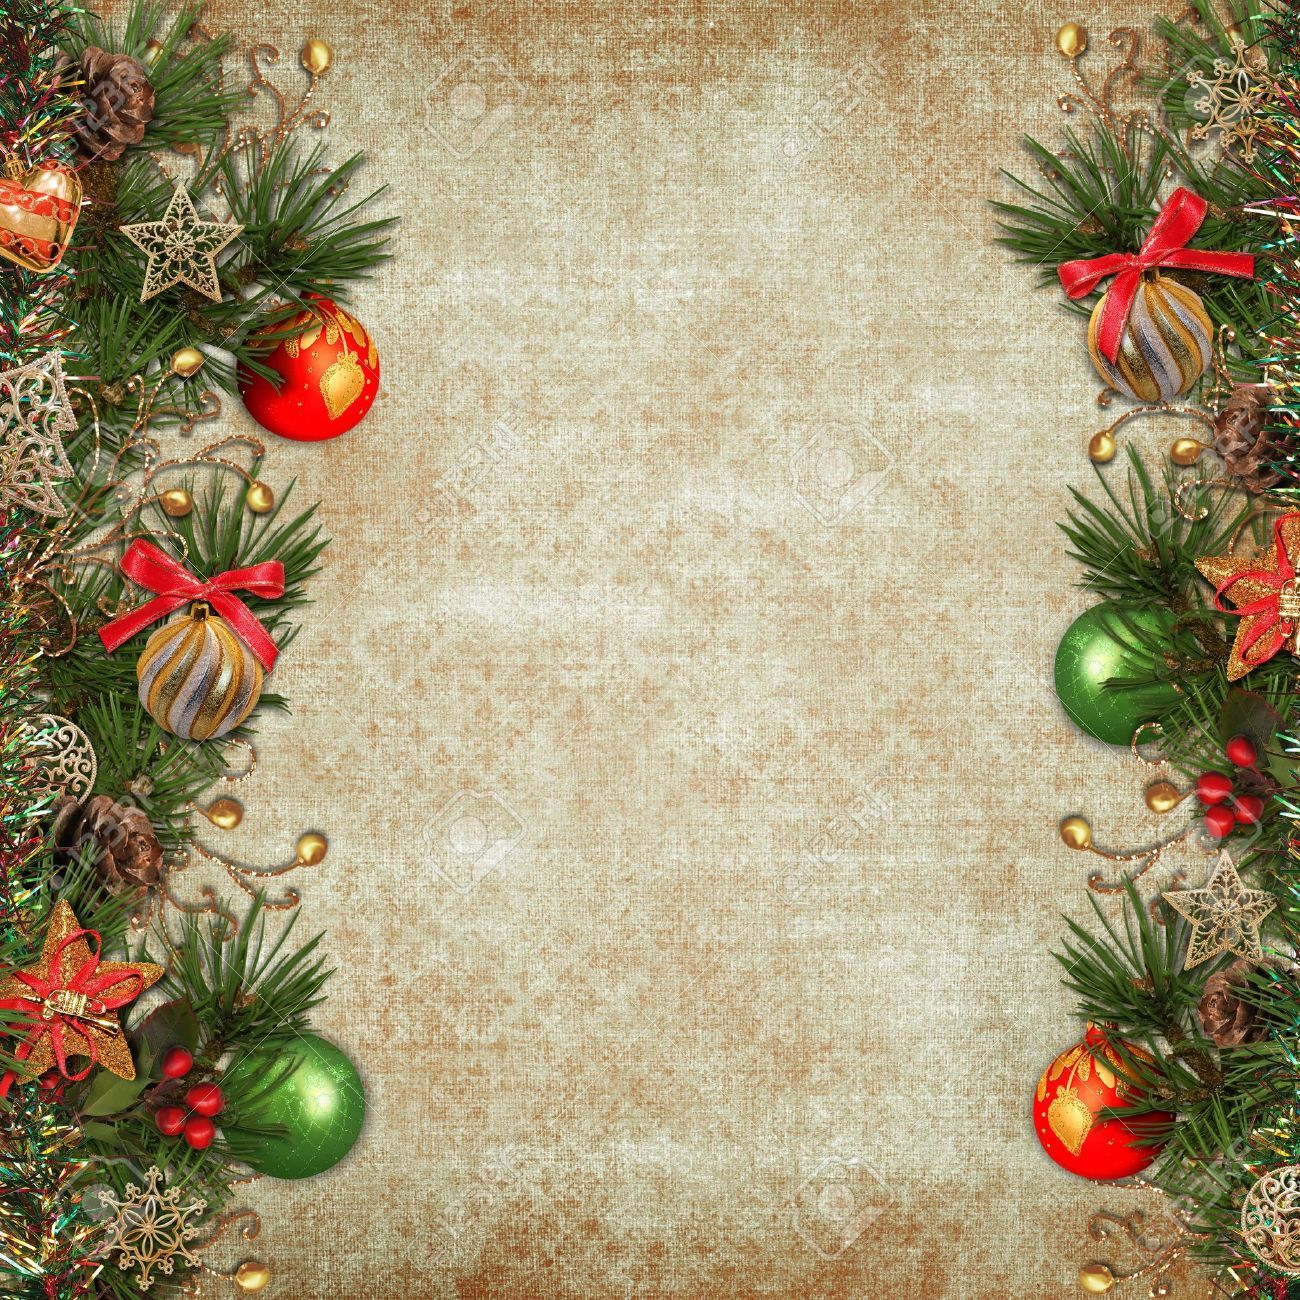 Vintage Christmas Background Stock Photo, Picture And ...